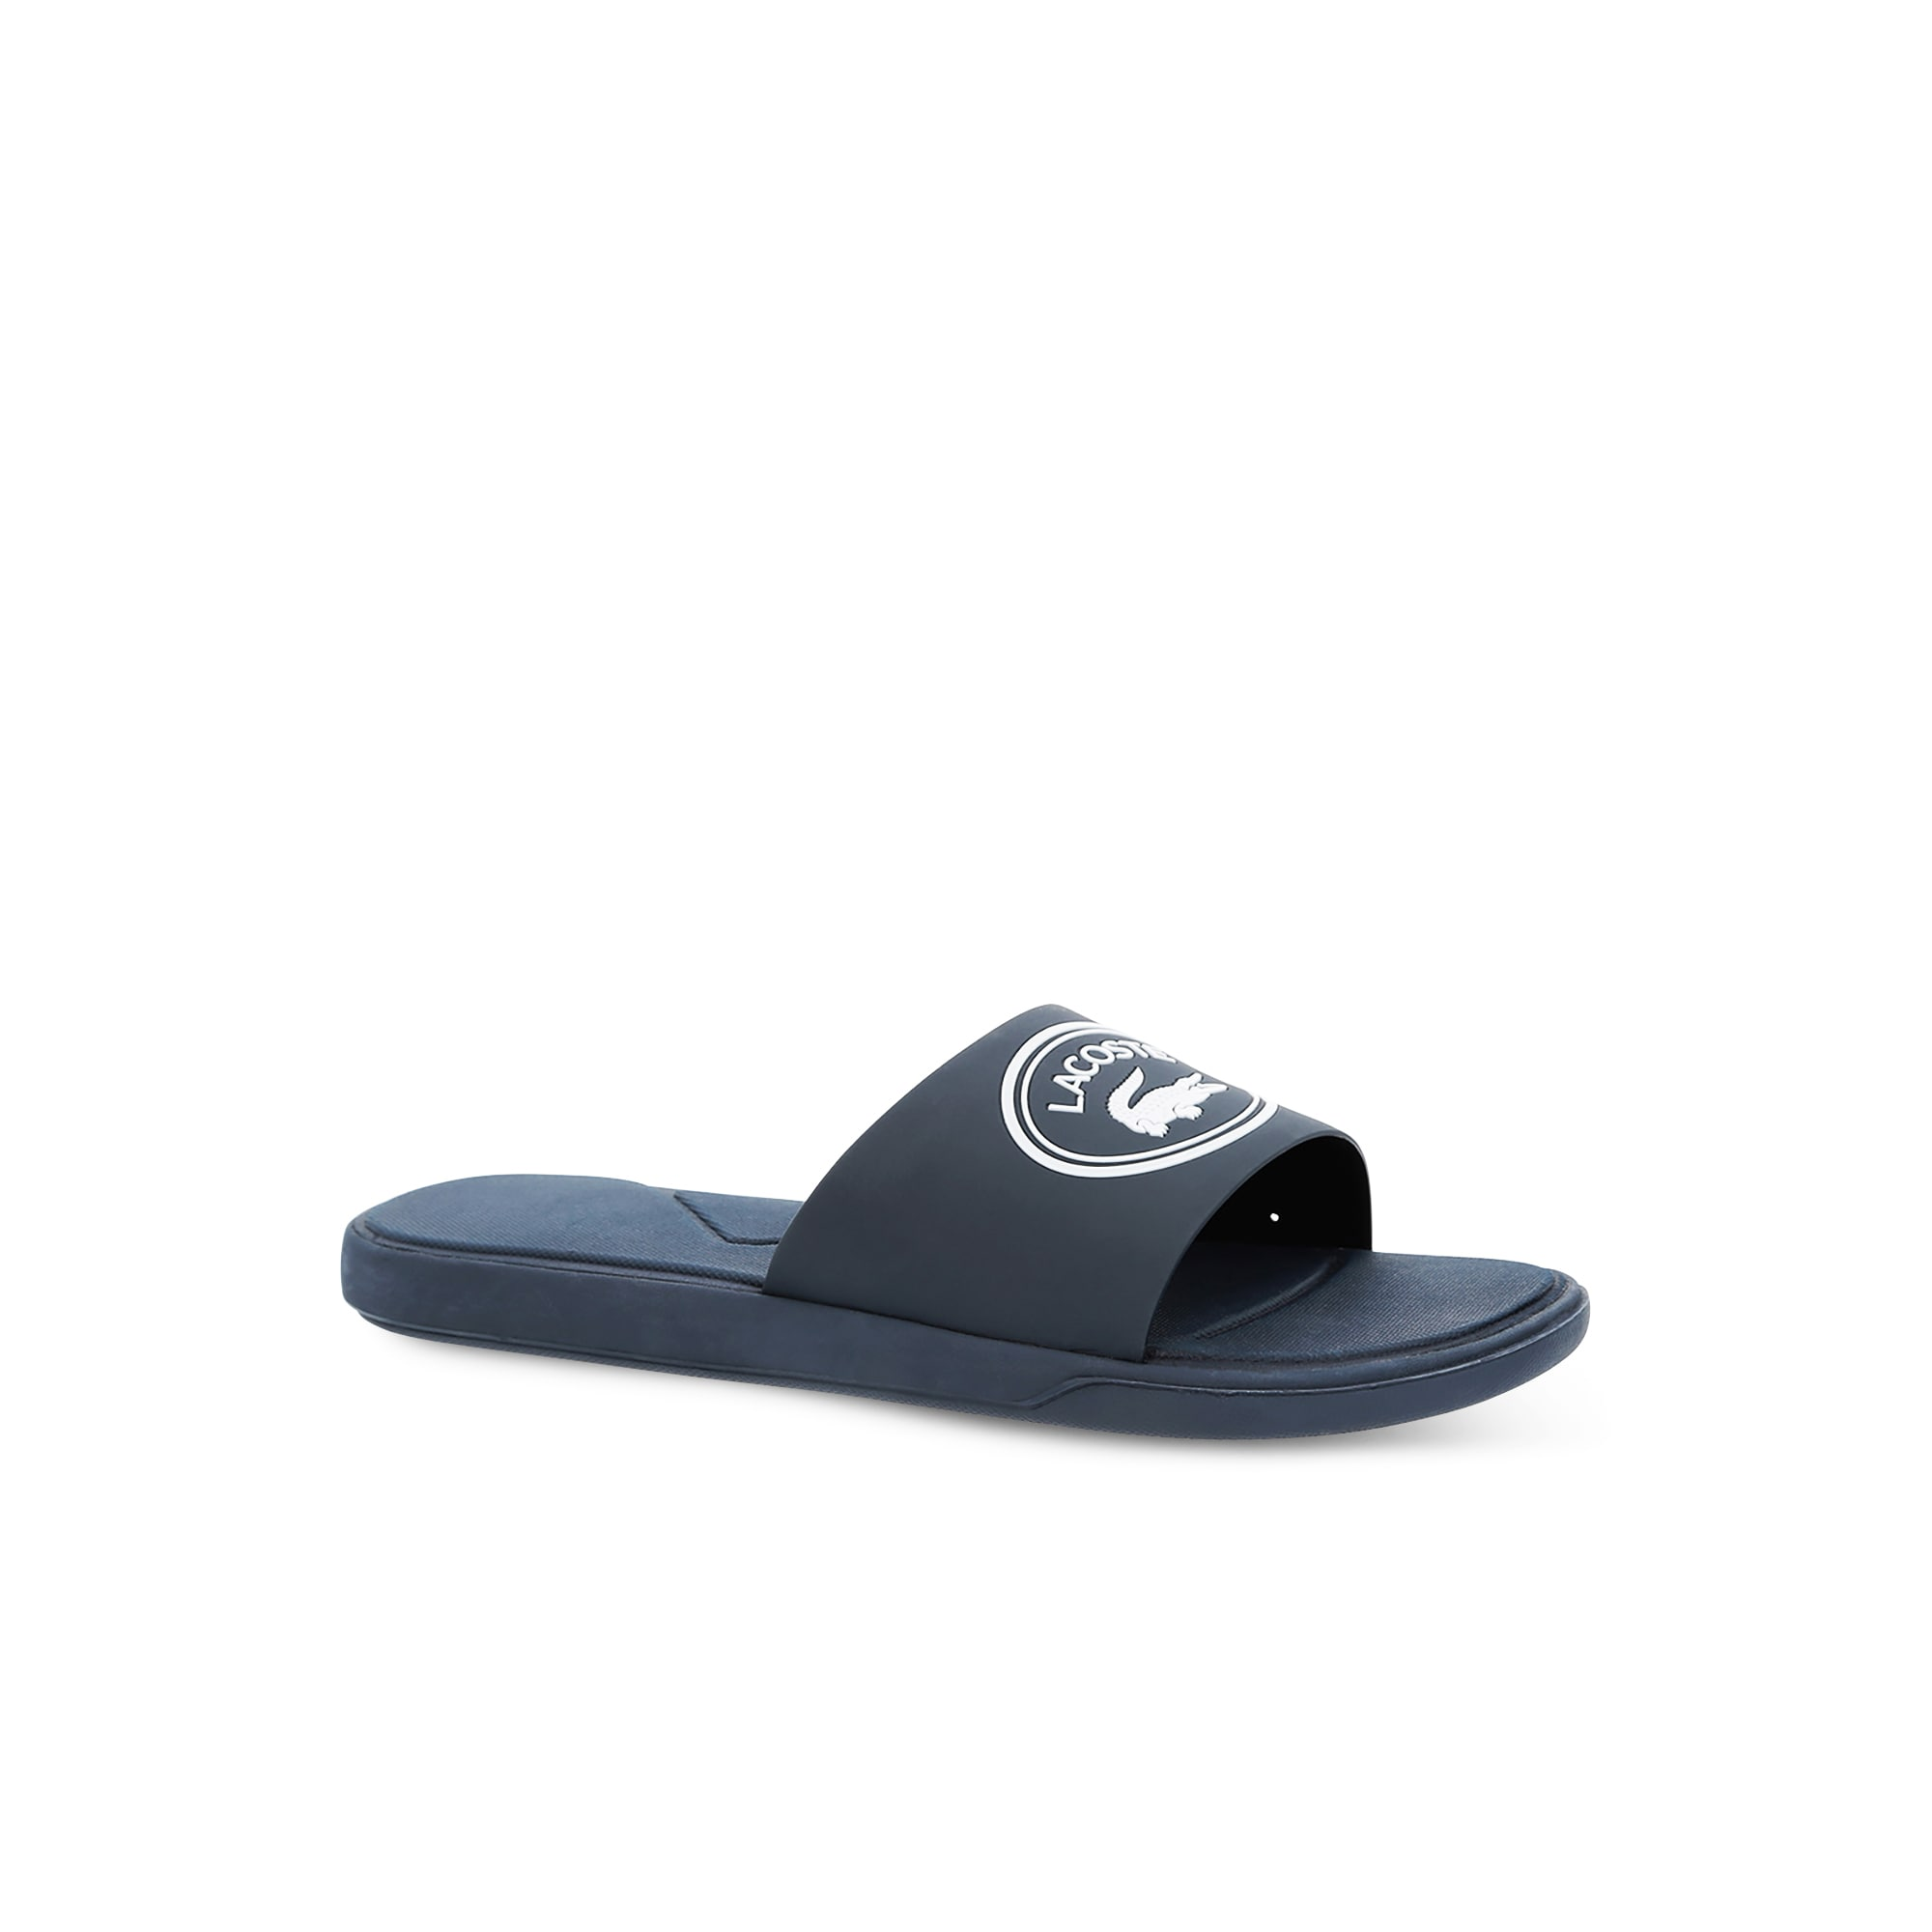 cfc299302a0 Men s L.30 Rubber Slides